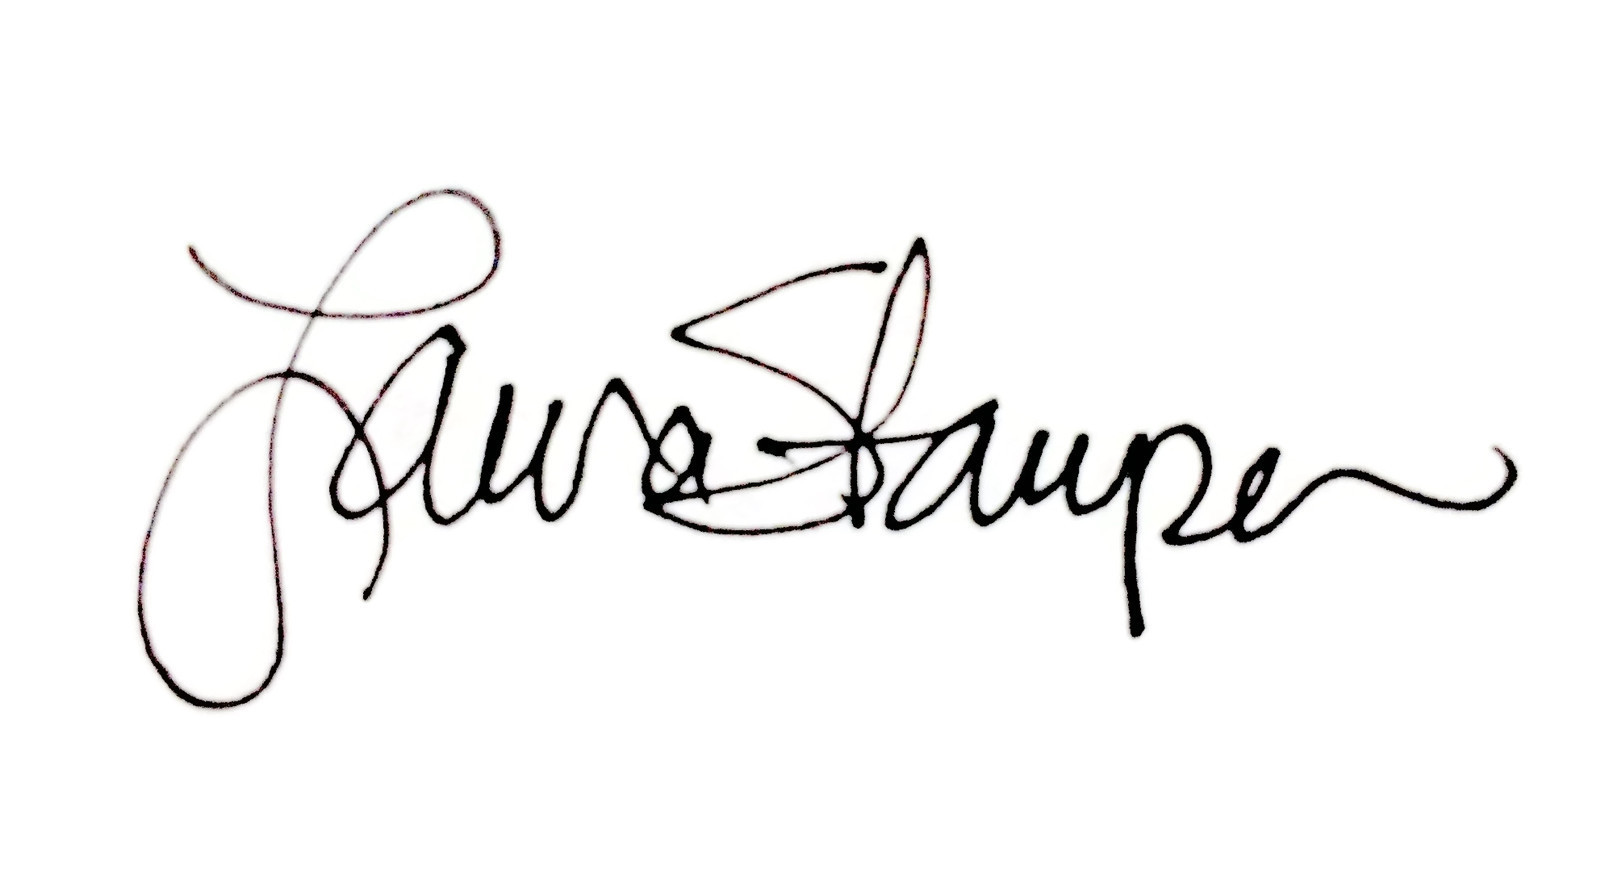 laura Stamper Designs's Signature